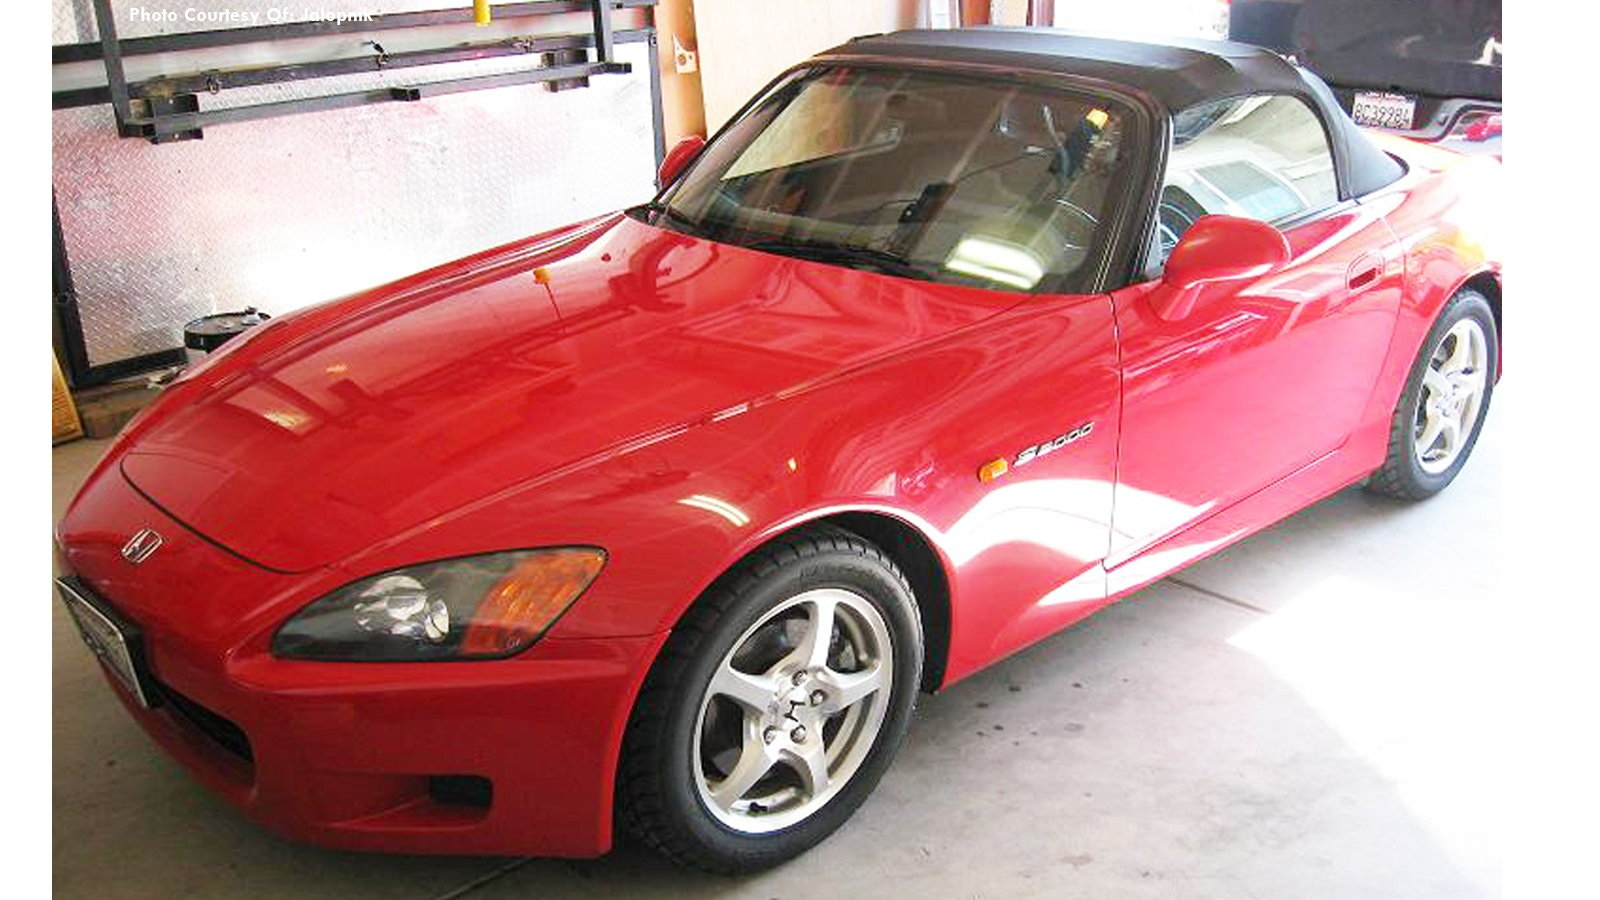 Brian and his S2000 full-electric conversion